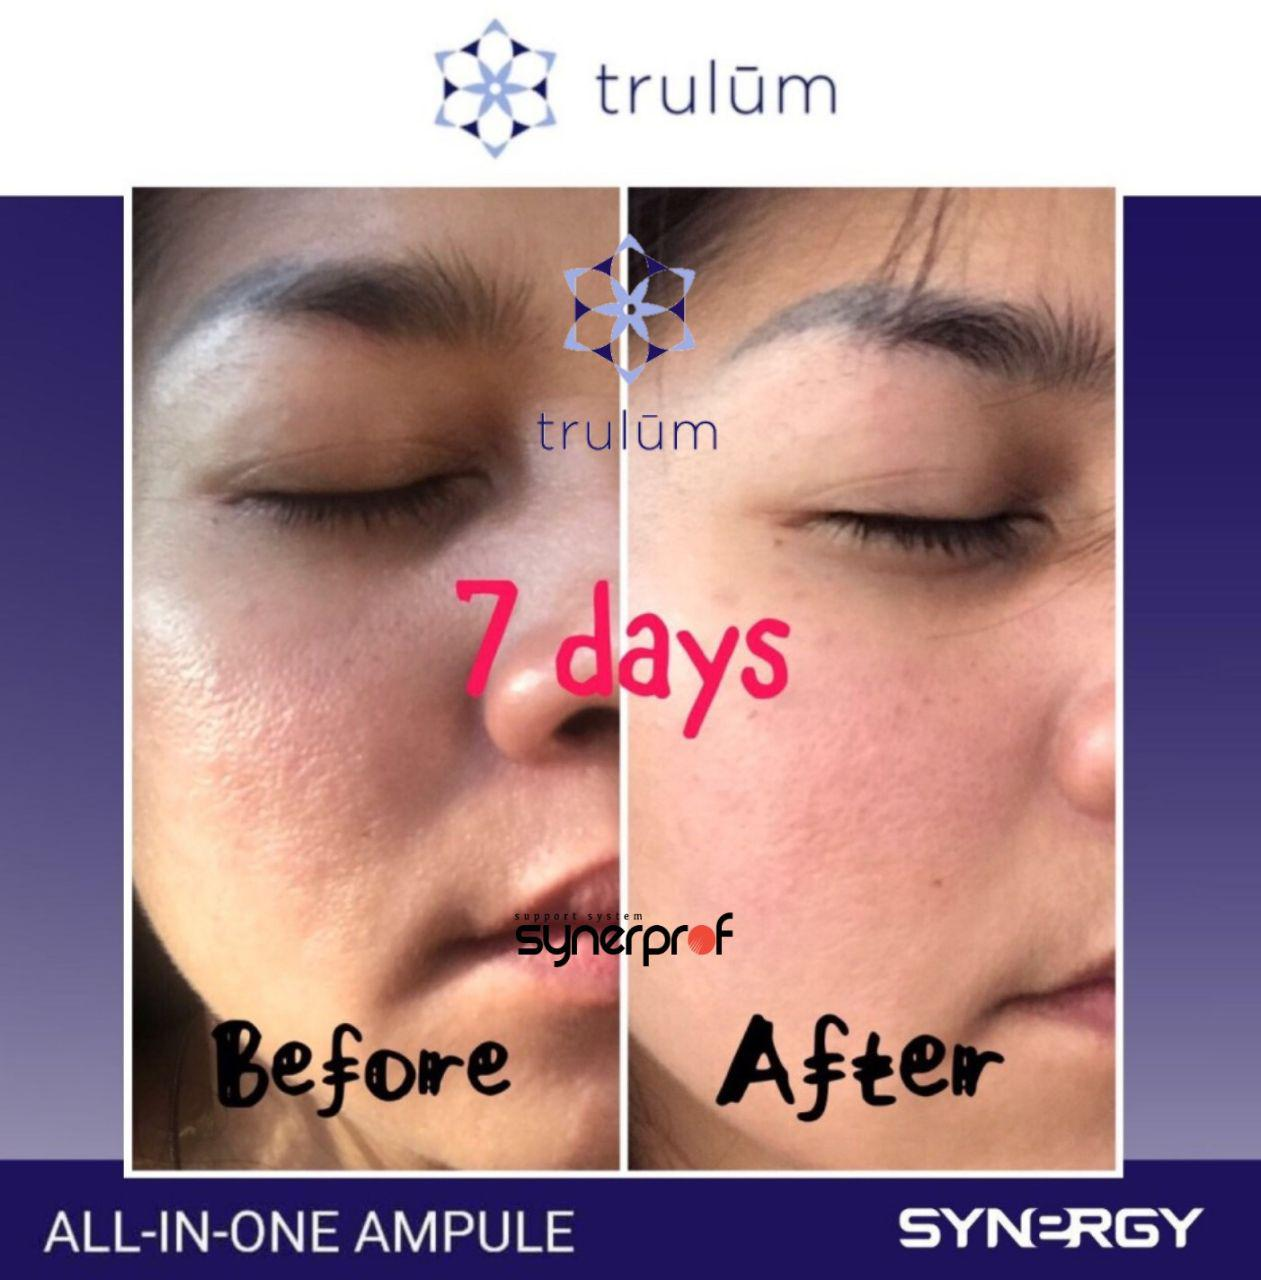 Jual Trulum All In One Ampoule Di Lubuk Pakam WA: 08112338376